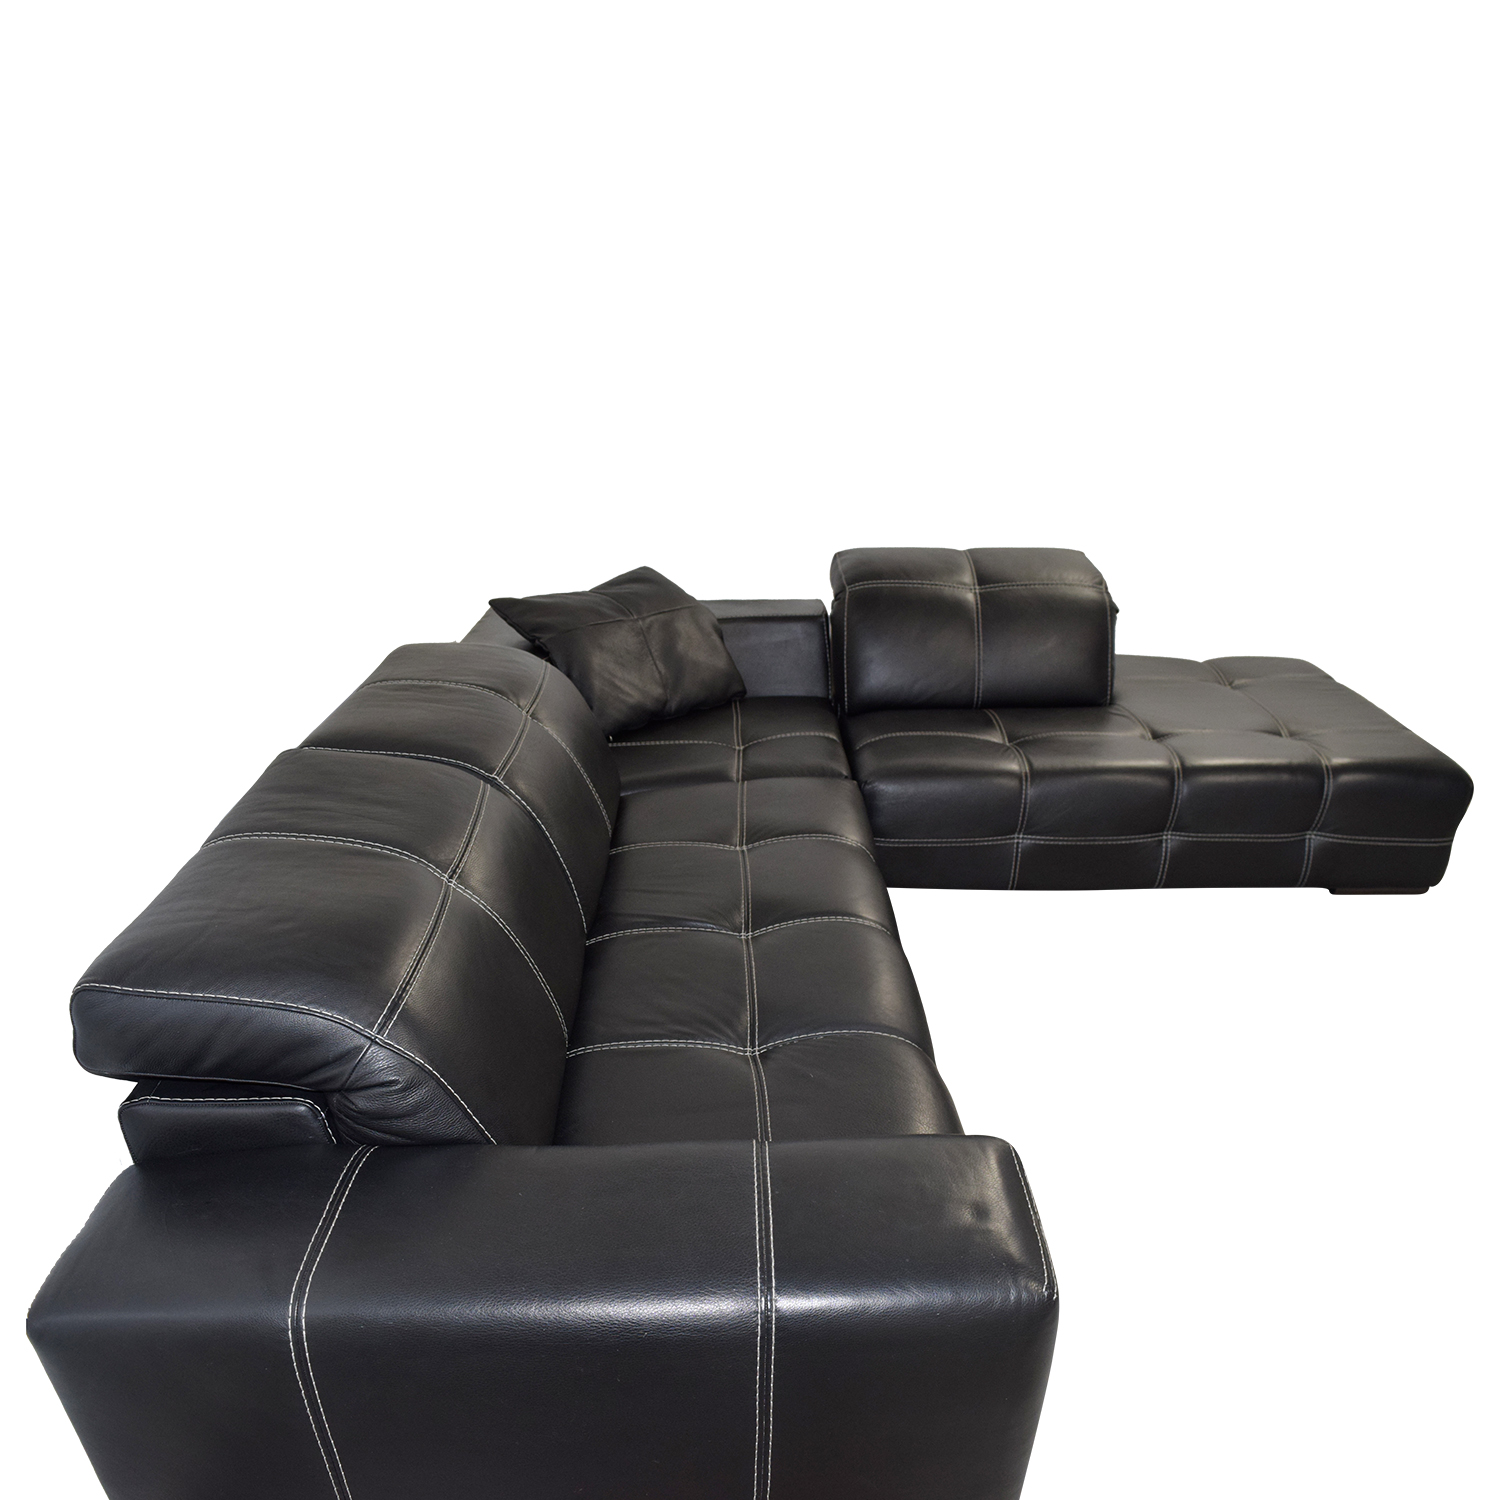 85% OFF - Natuzzi Natuzzi Black Italian Leather L-Shaped ...